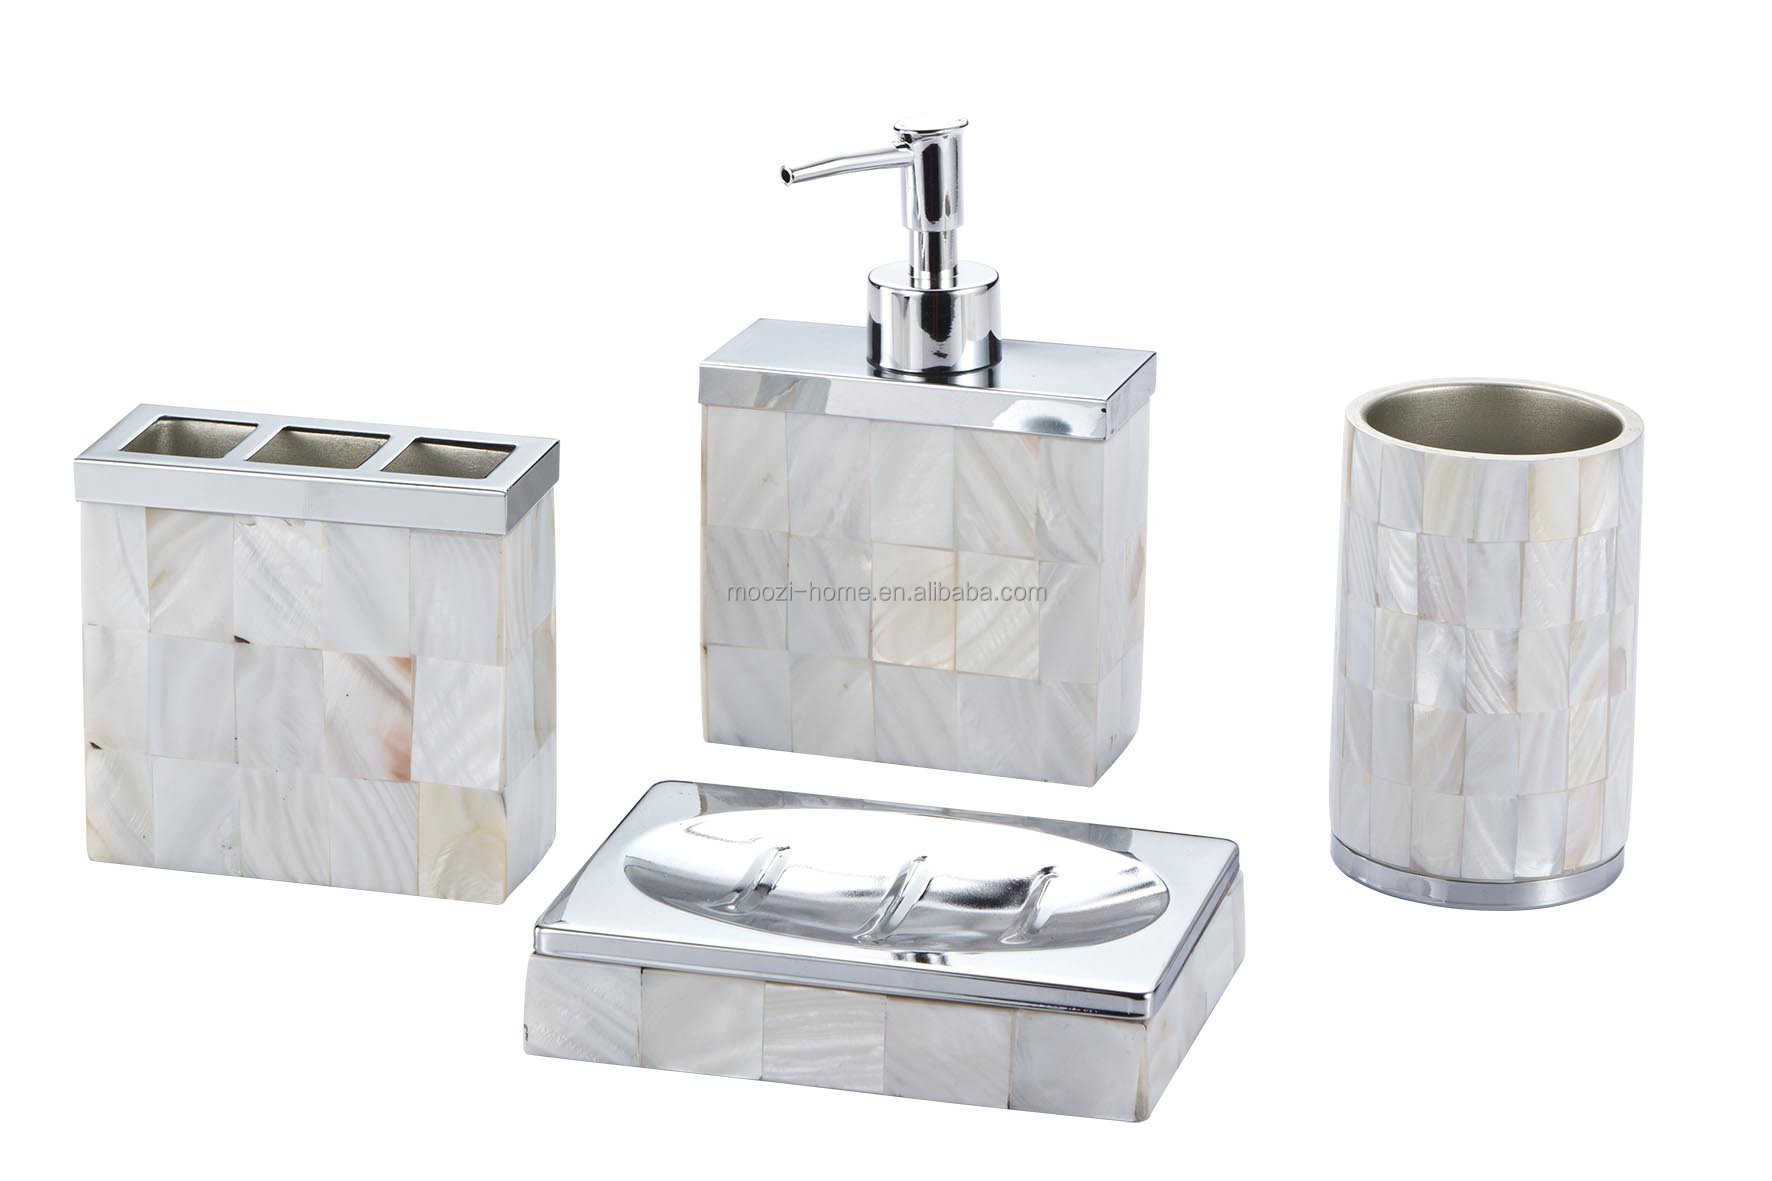 Superieur Bathroom Soap Dispensers Sets. Mosaic Soap Dispensers, Mosaic Soap  Dispensers Suppliers And Manufacturers At Alibaba.com